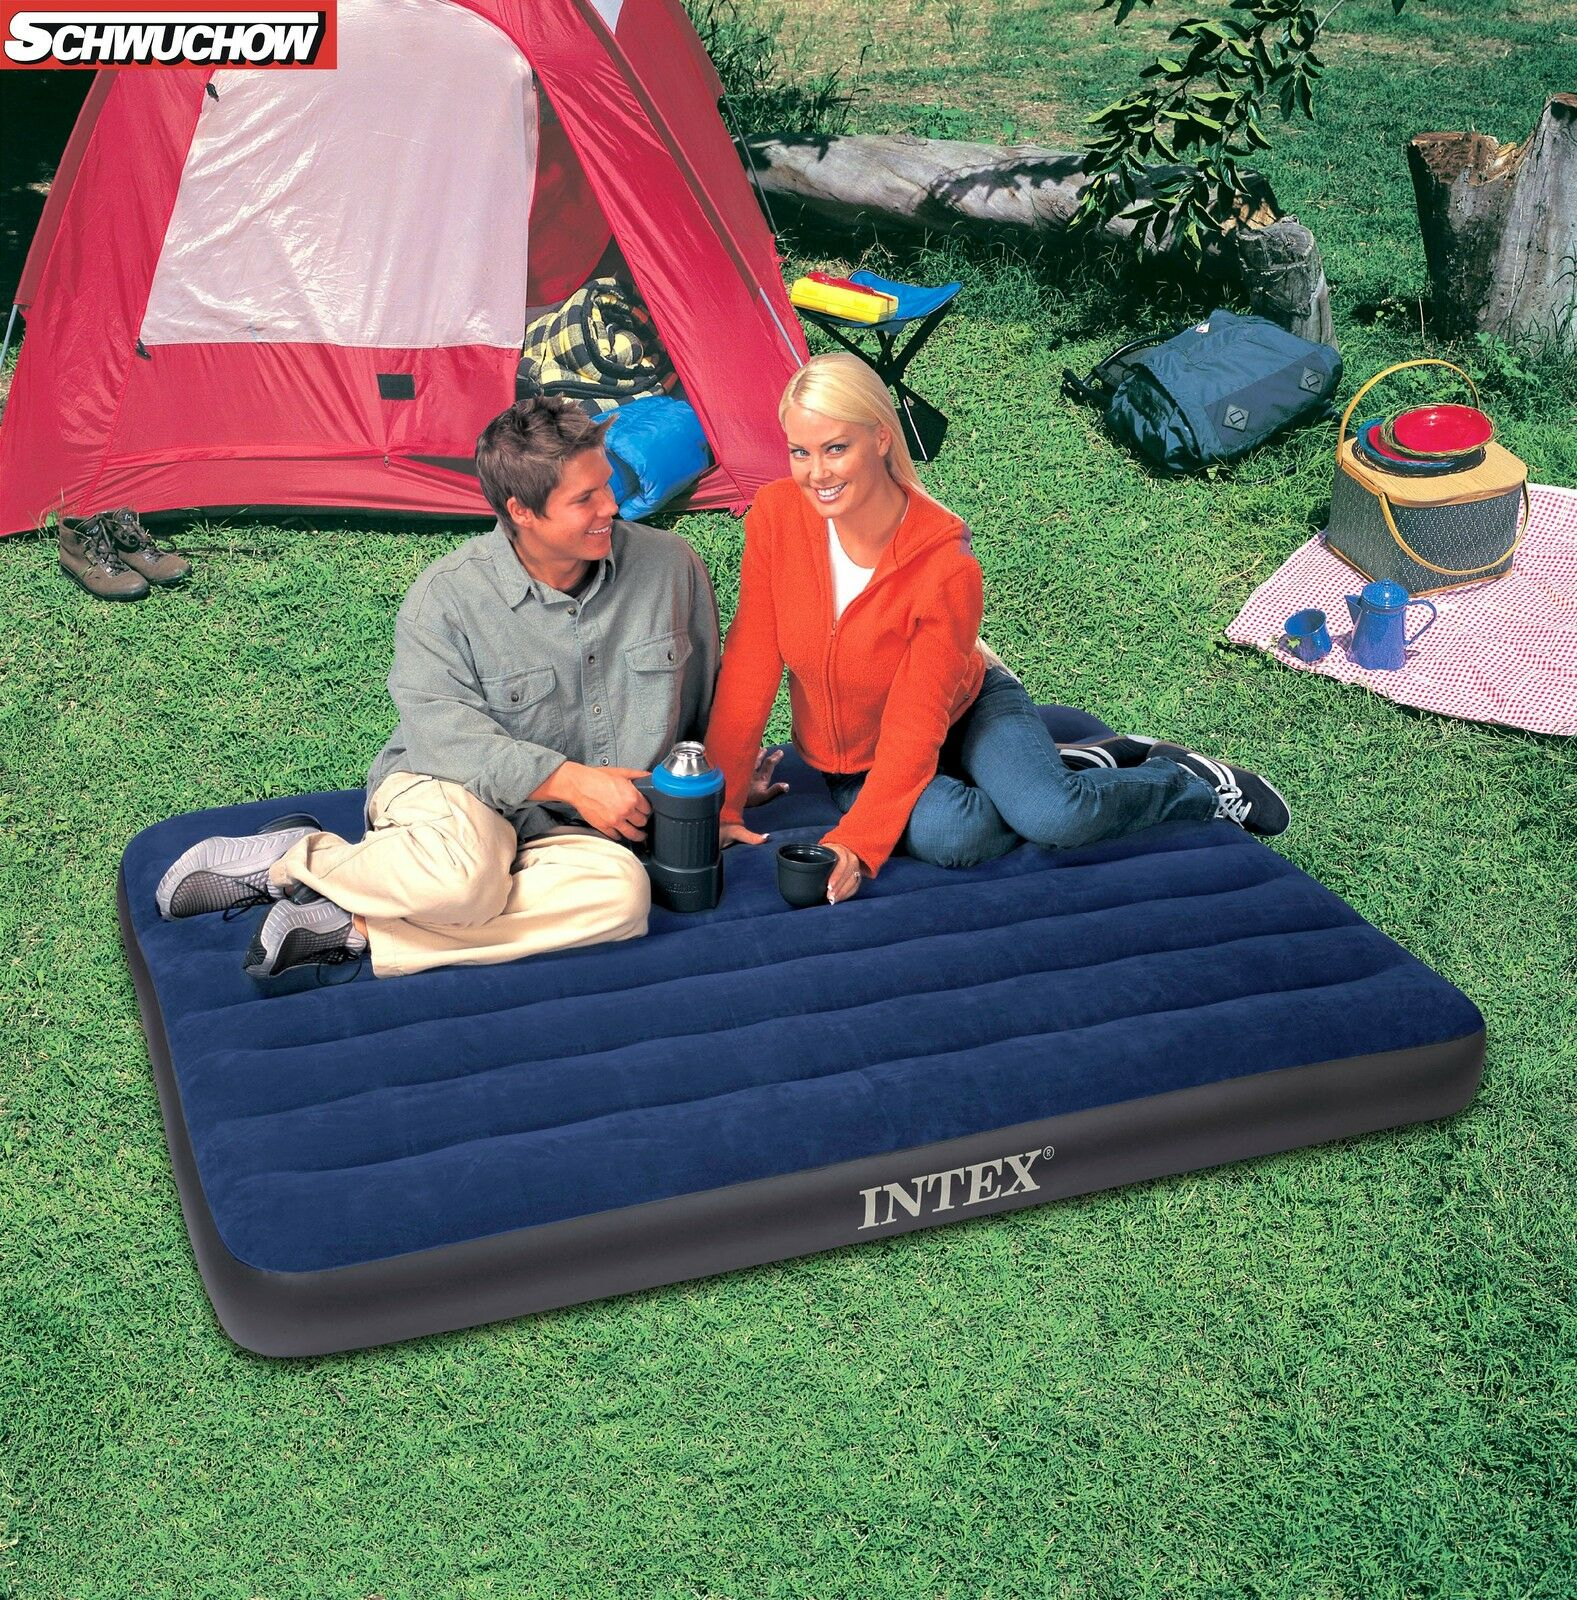 Intex Airbed Bed Air Mattress Guest Bed 137 x 191 x 22 Camping Bed Bestway